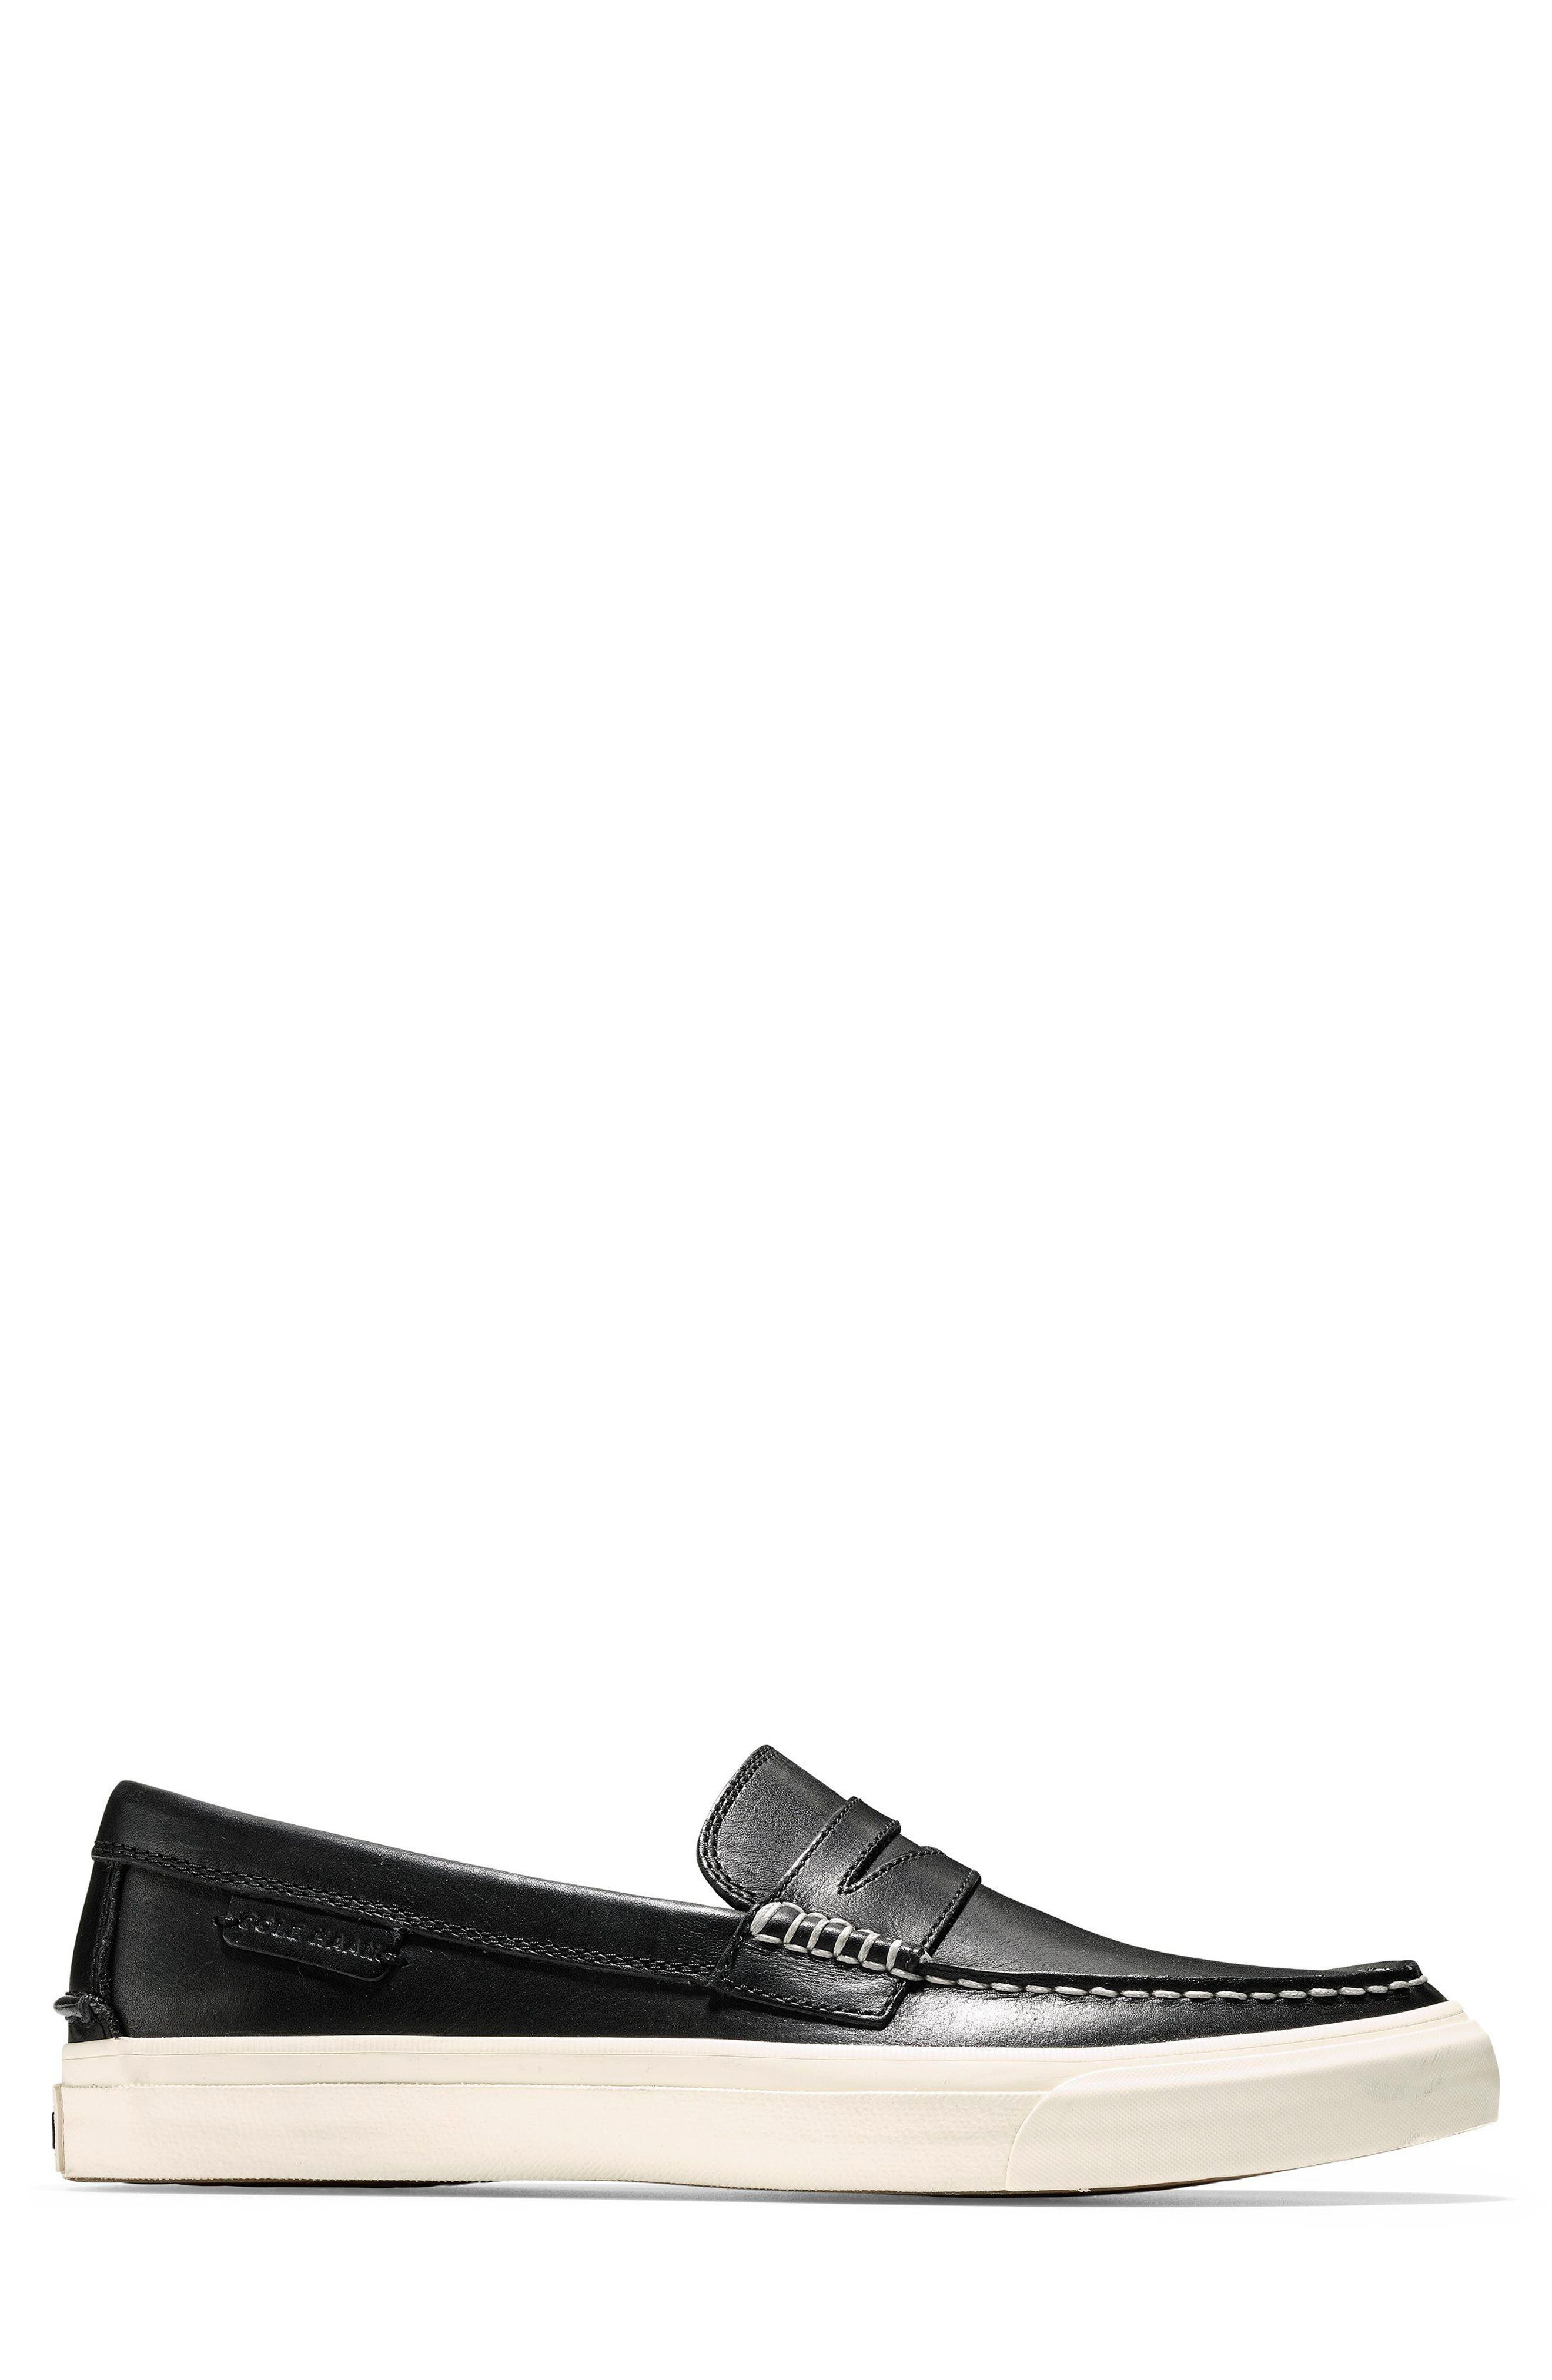 Pinch Weekend LX Penny Loafer,                             Alternate thumbnail 3, color,                             Black/ White